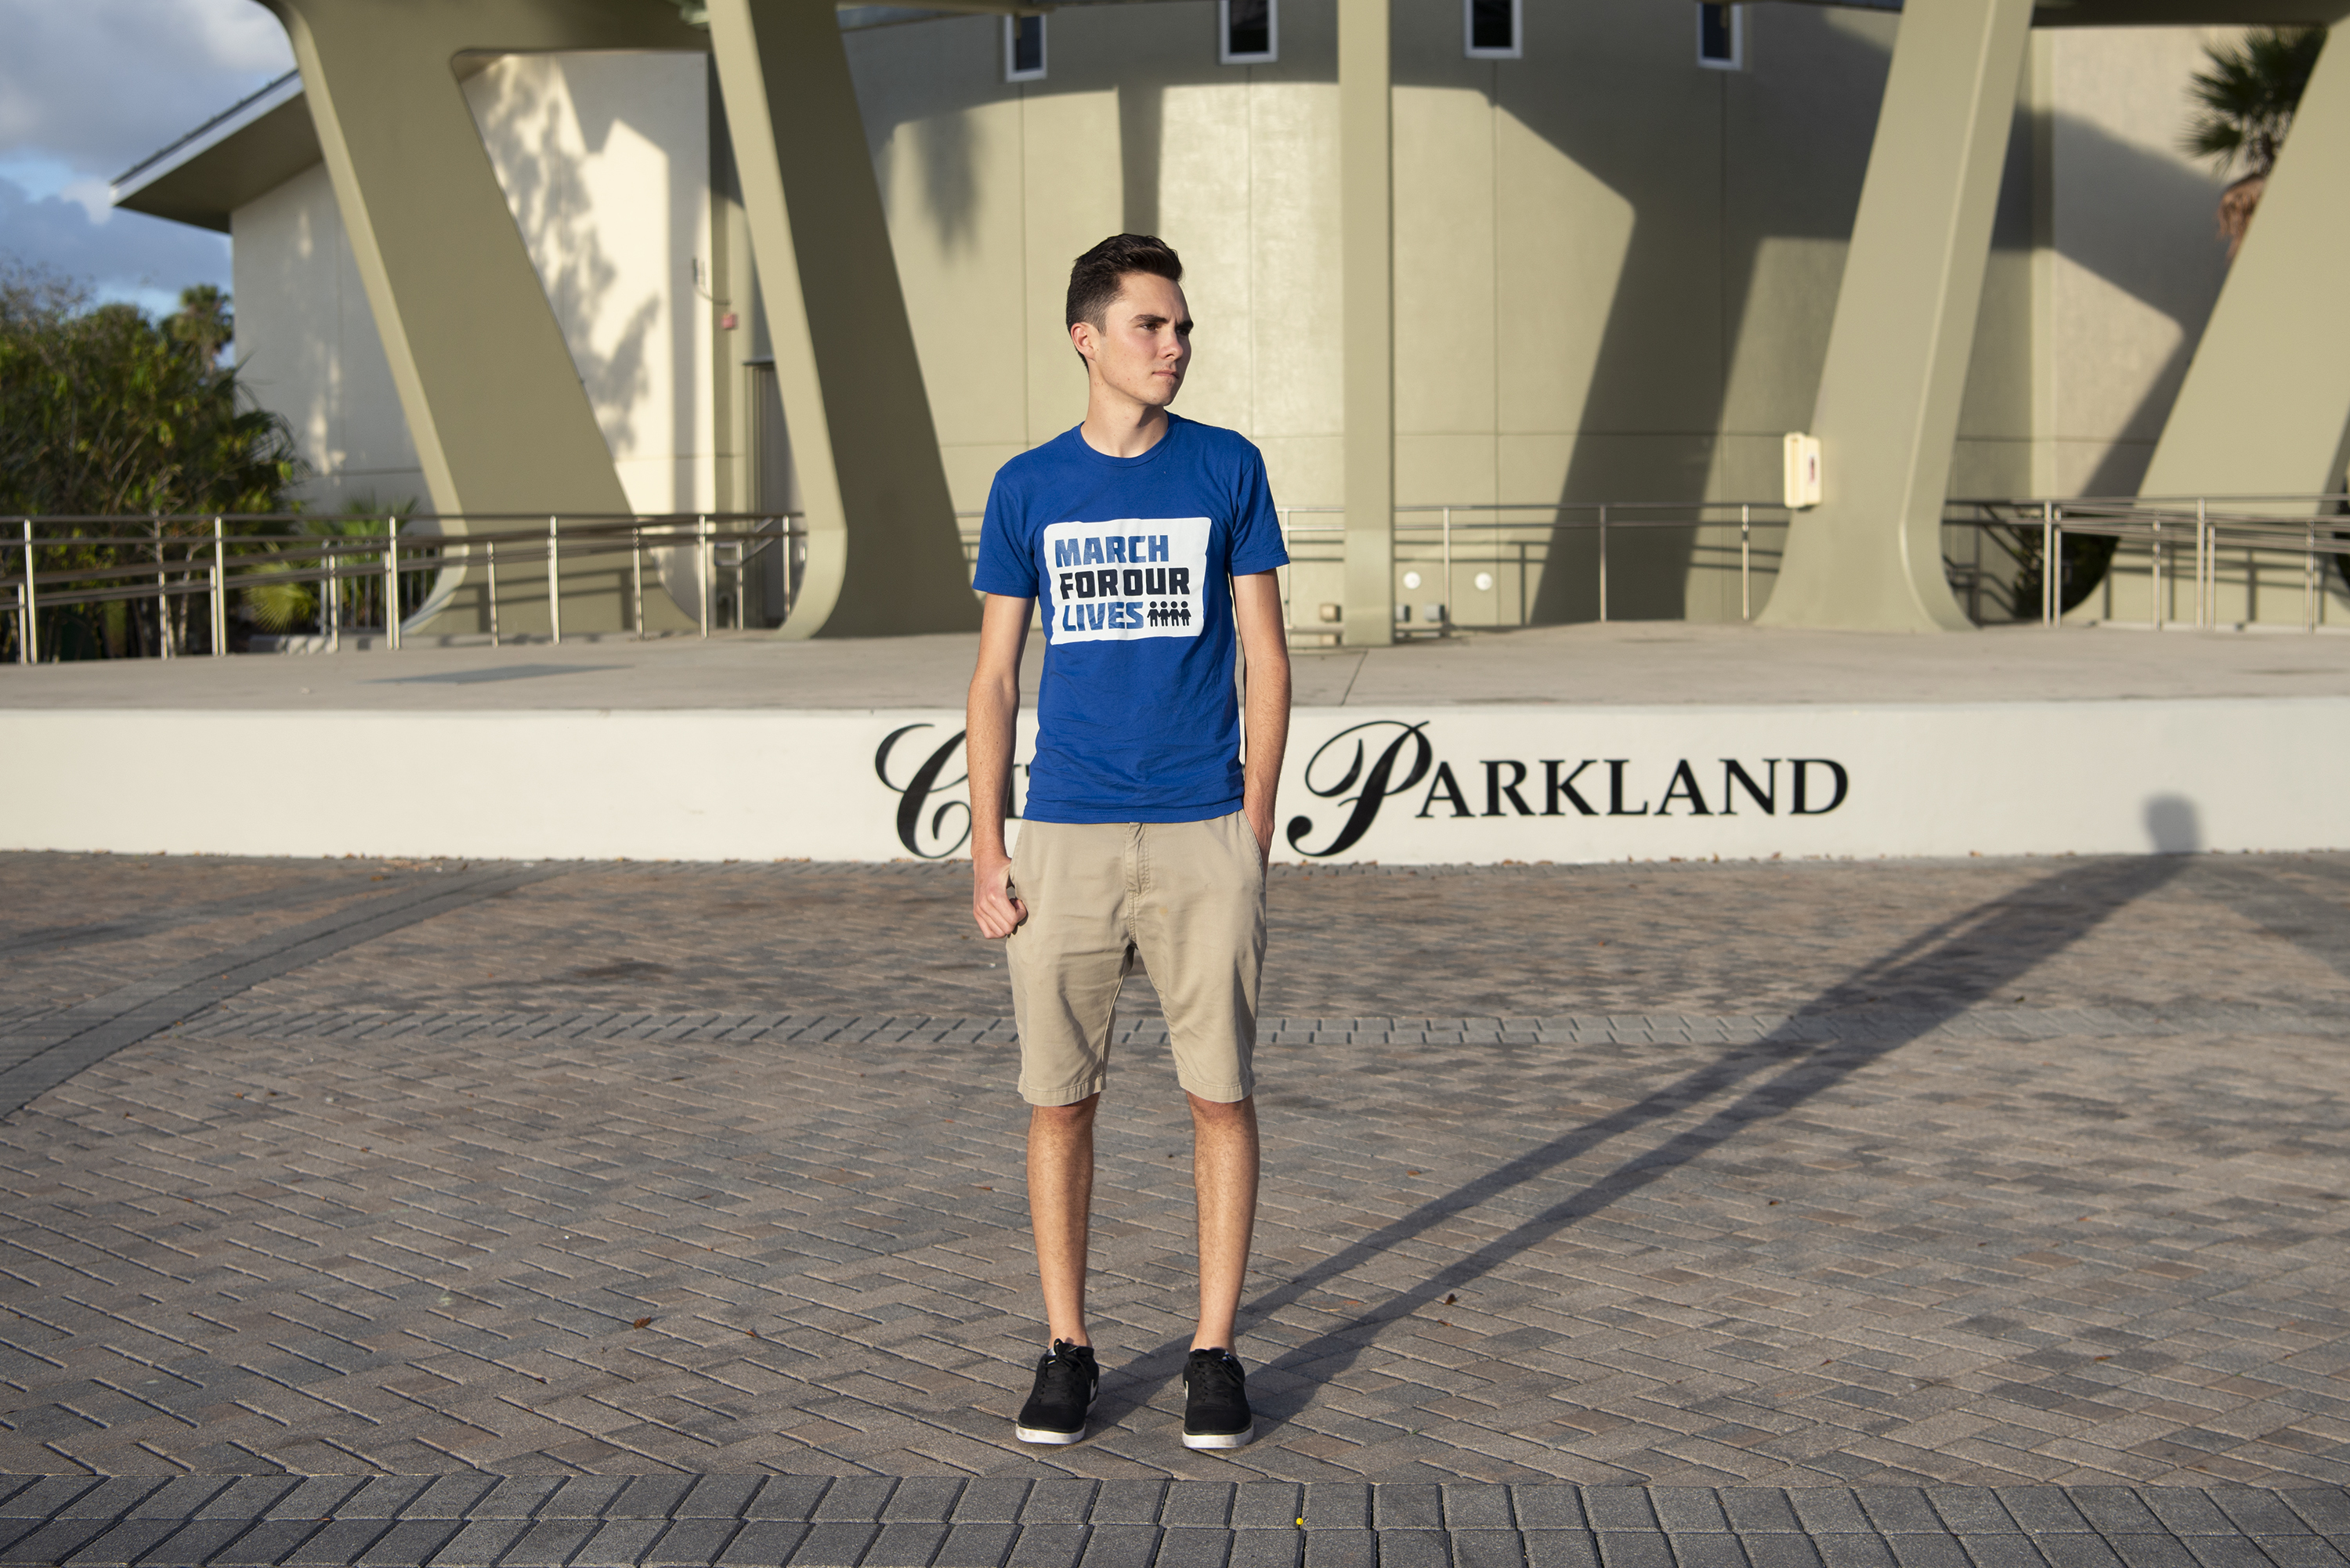 March For Our Lives, No Longer Protesting In Streets, Unveils Gun Control Plan